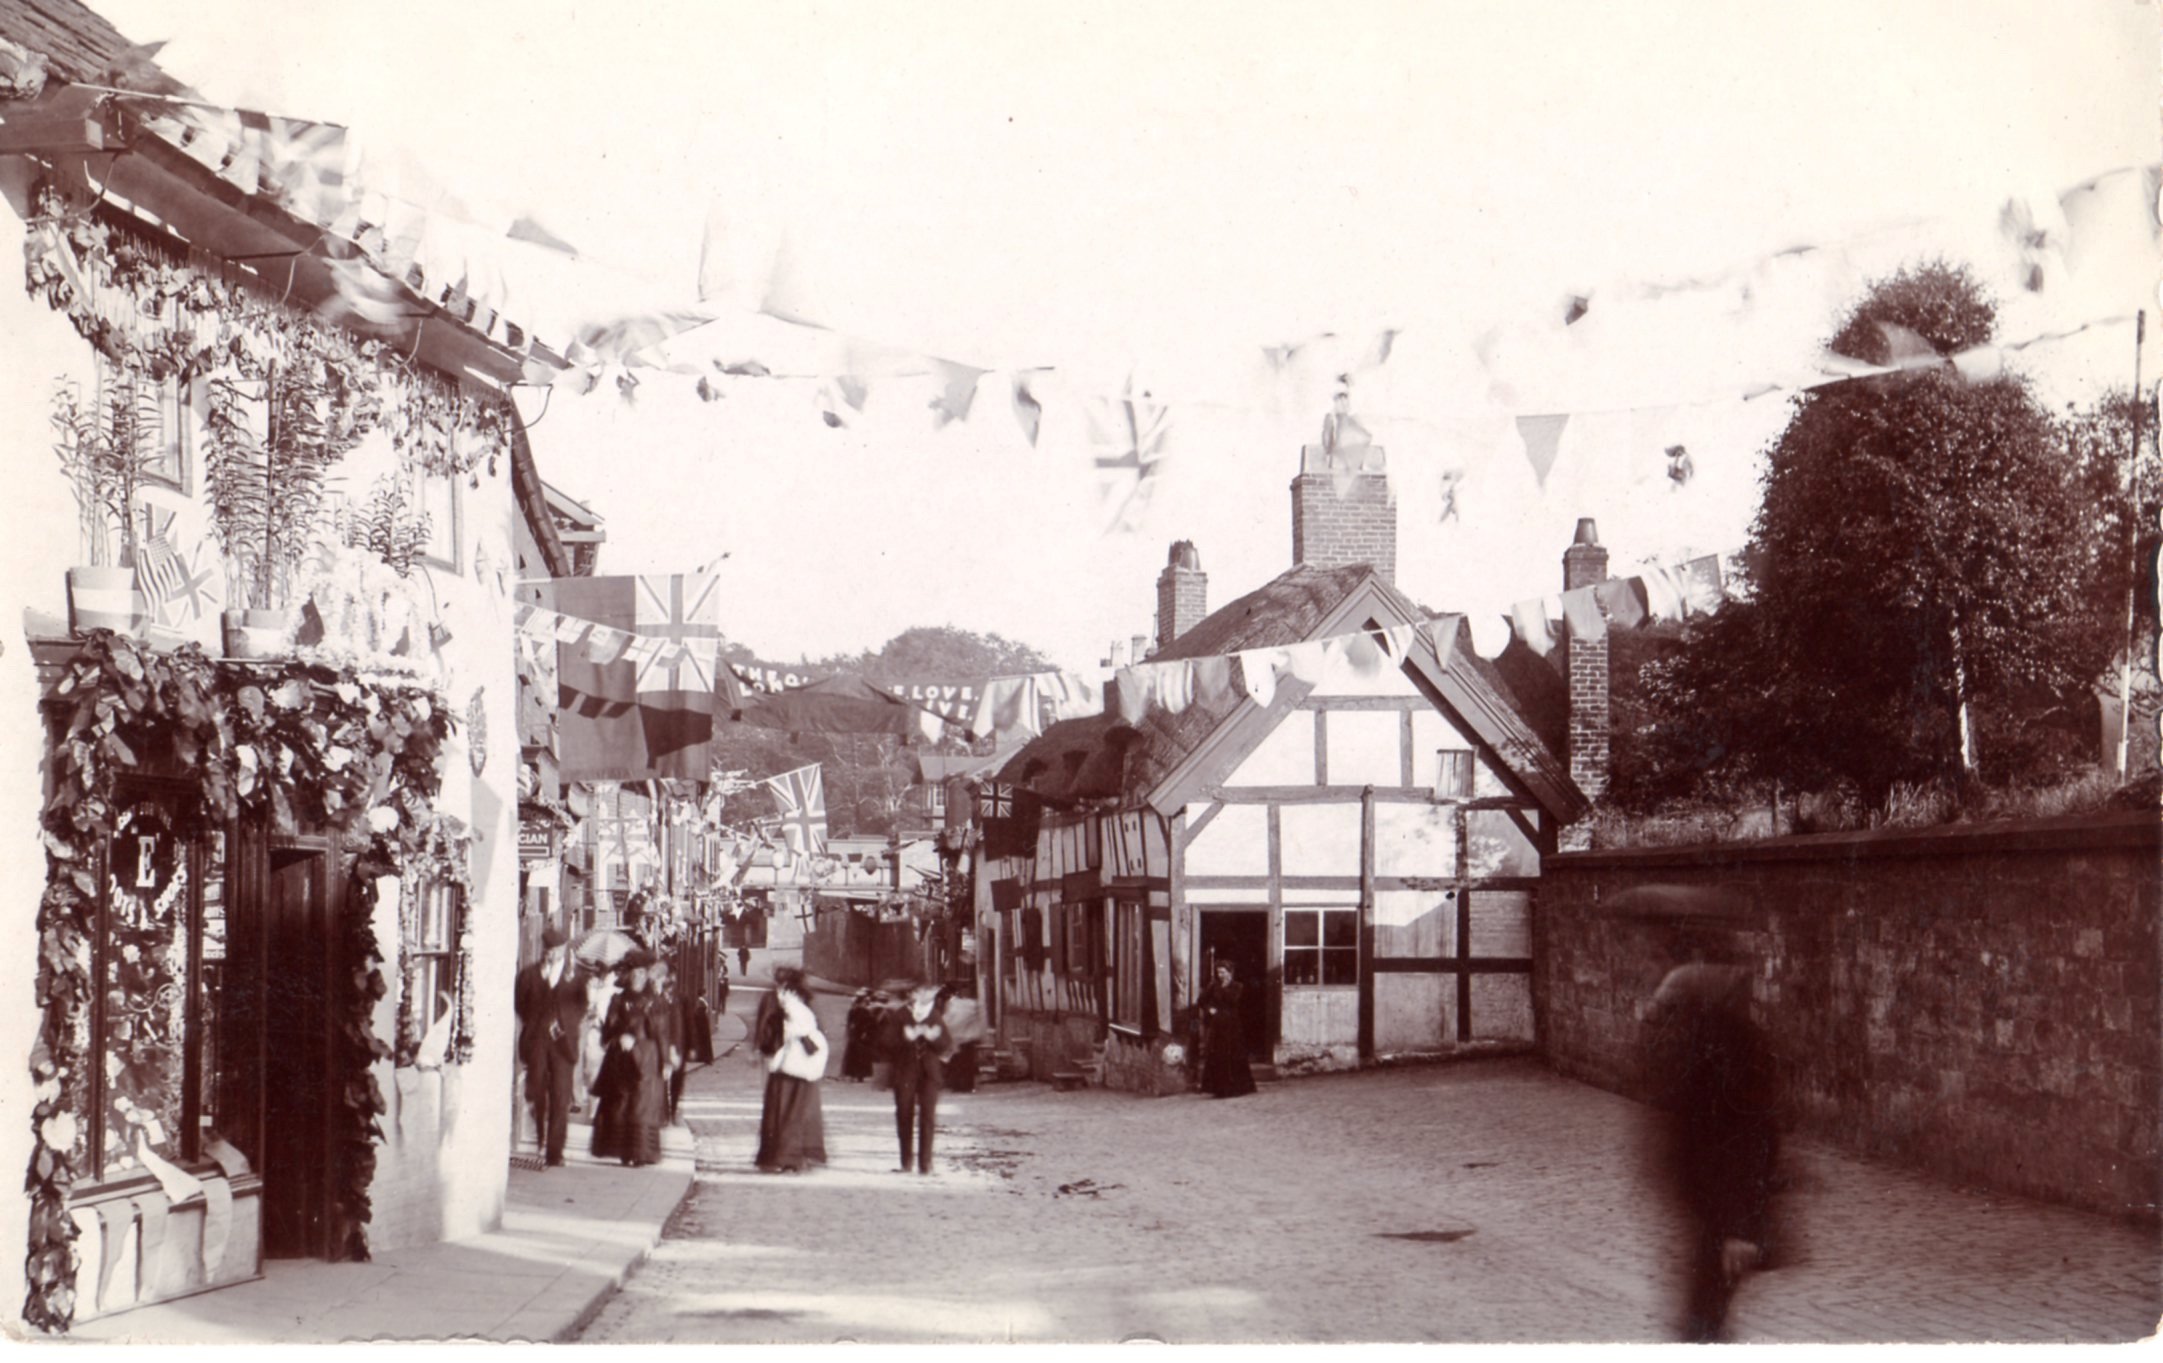 Knutsford's Royal May Day in times gone by